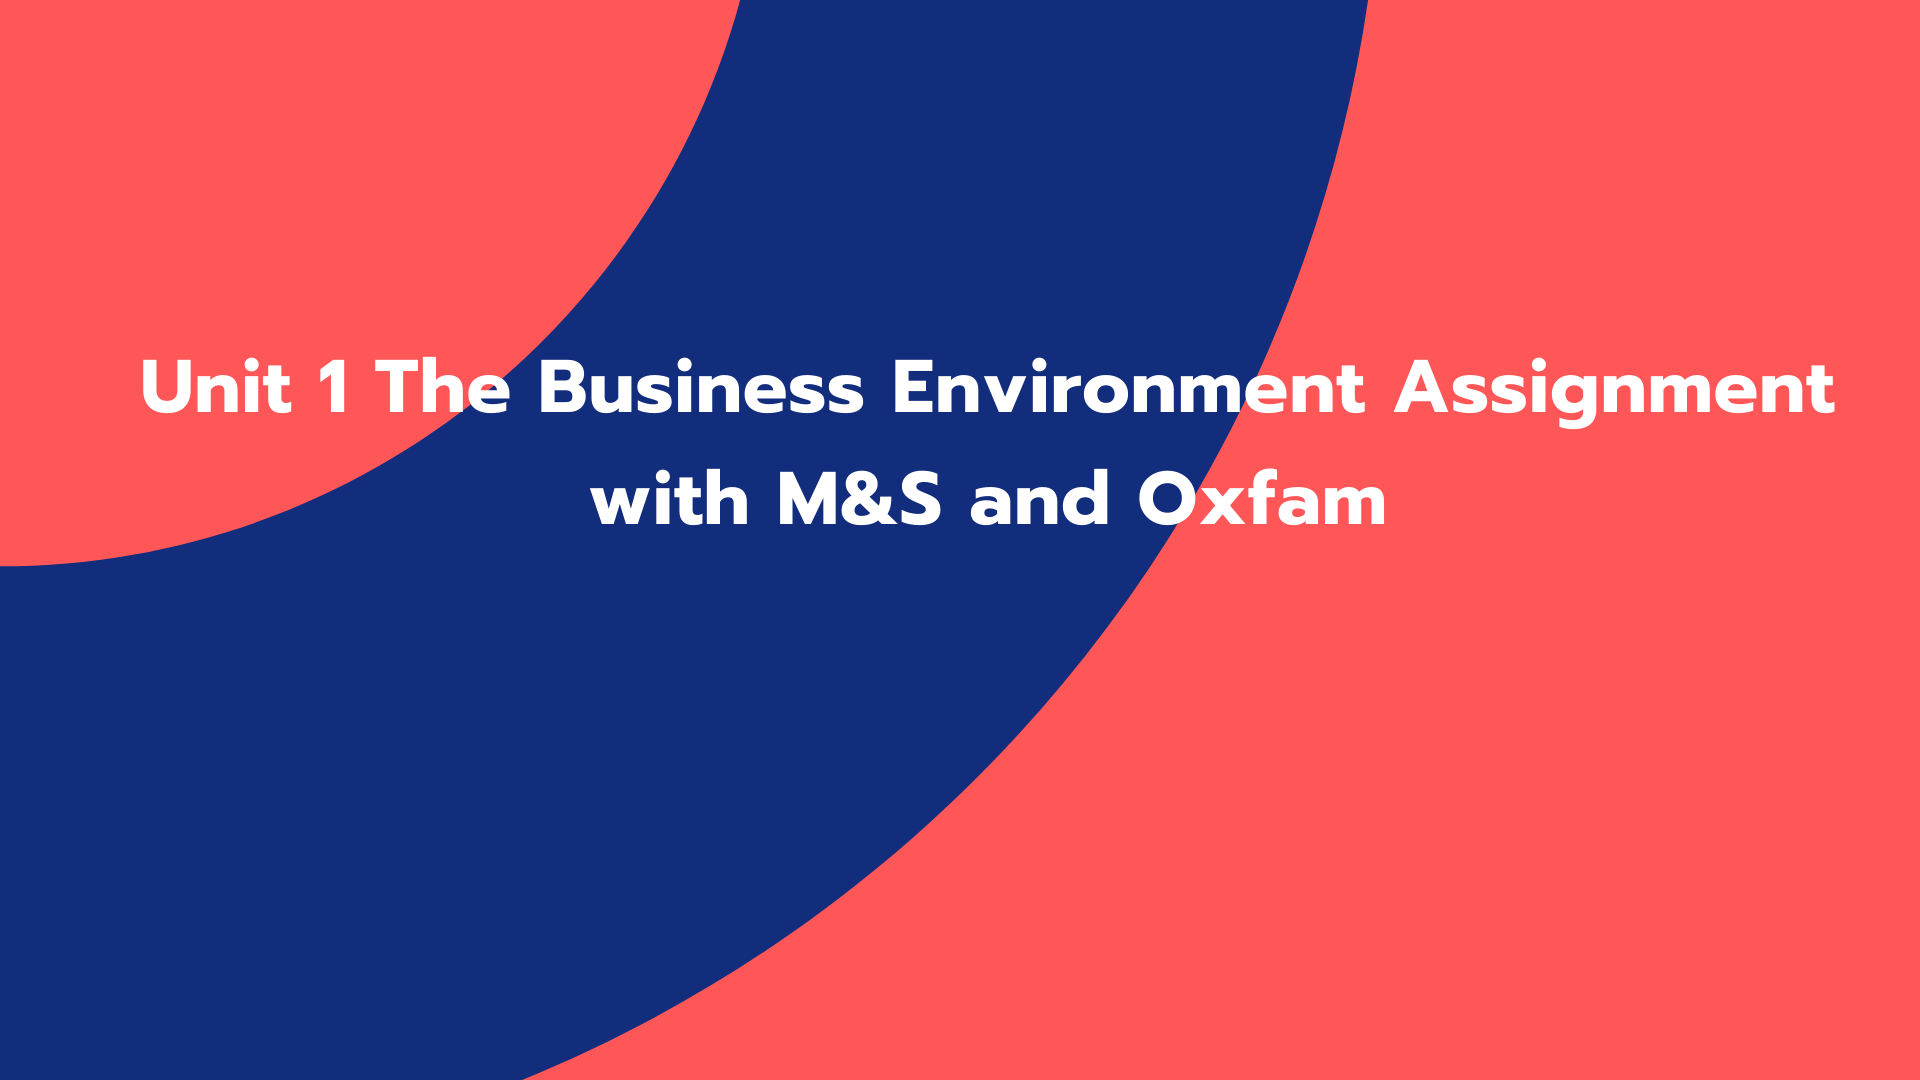 Unit 1 The Business Environment Assignment with M&S and Oxfam